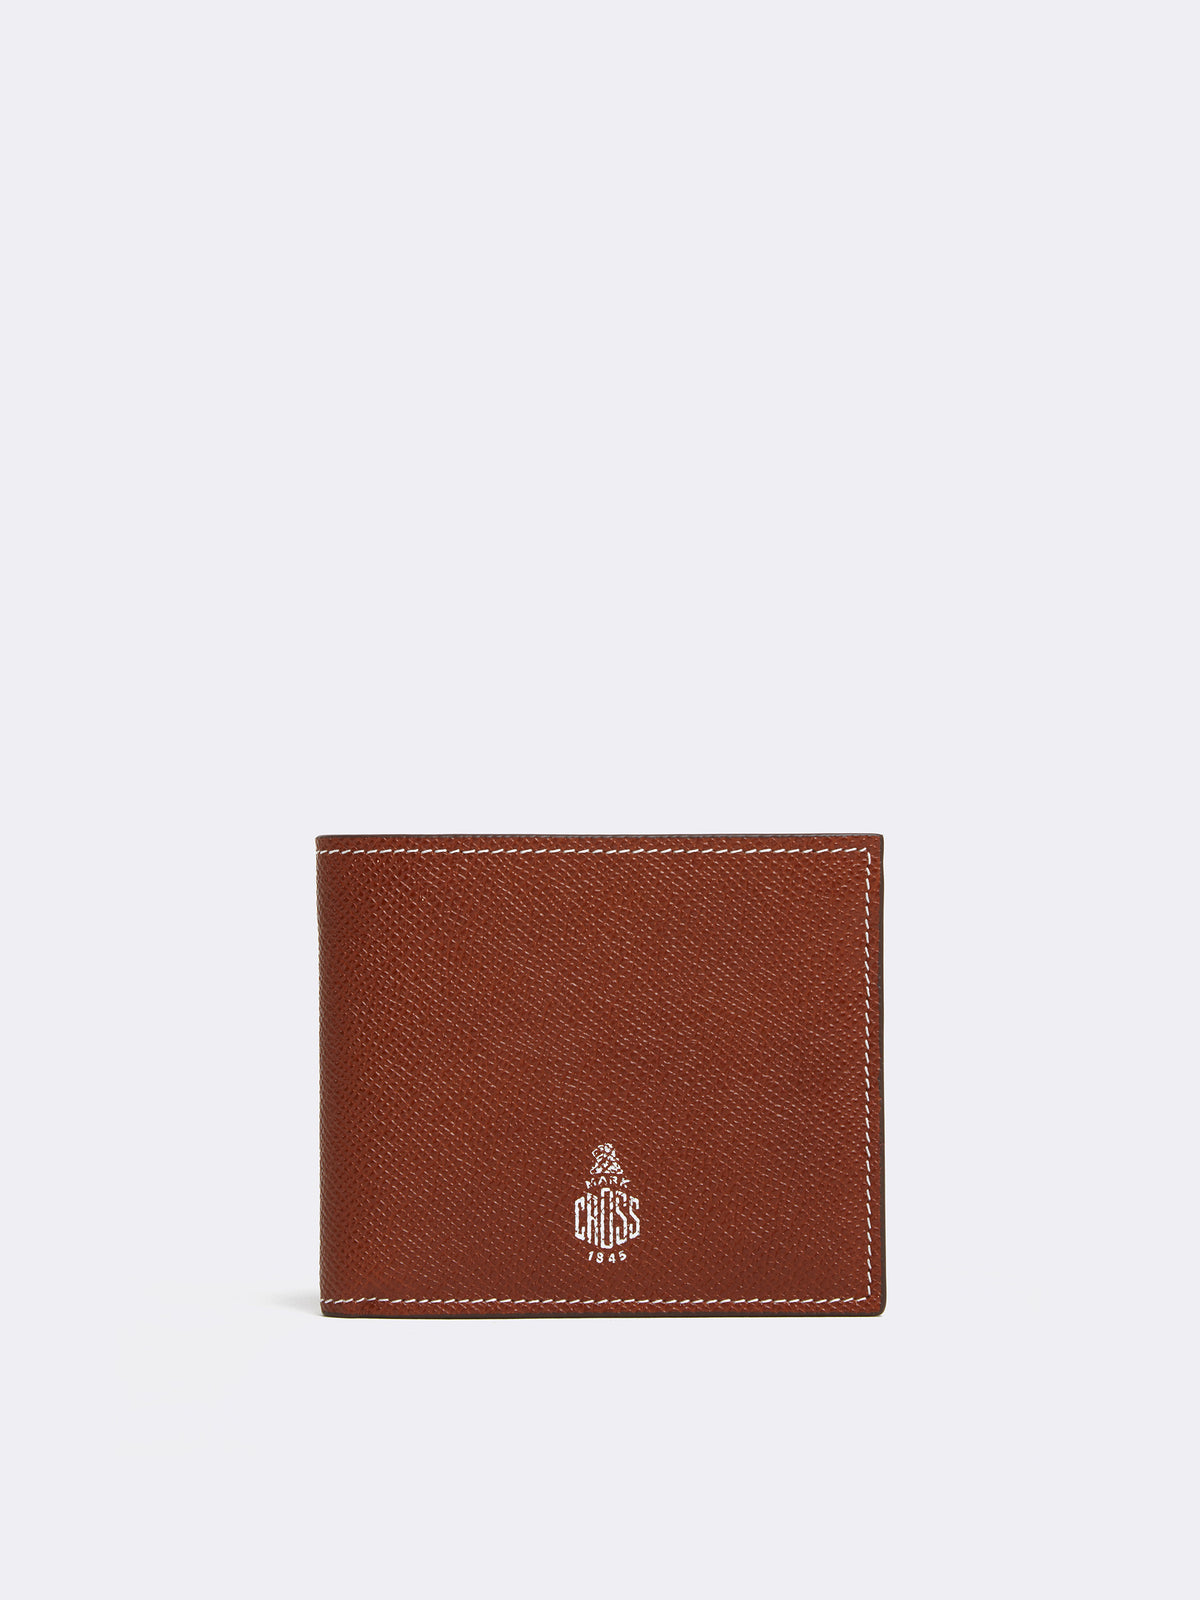 Mark Cross Bi-Fold X Leather Wallet Smooth Calf Saffiano Acorn Front